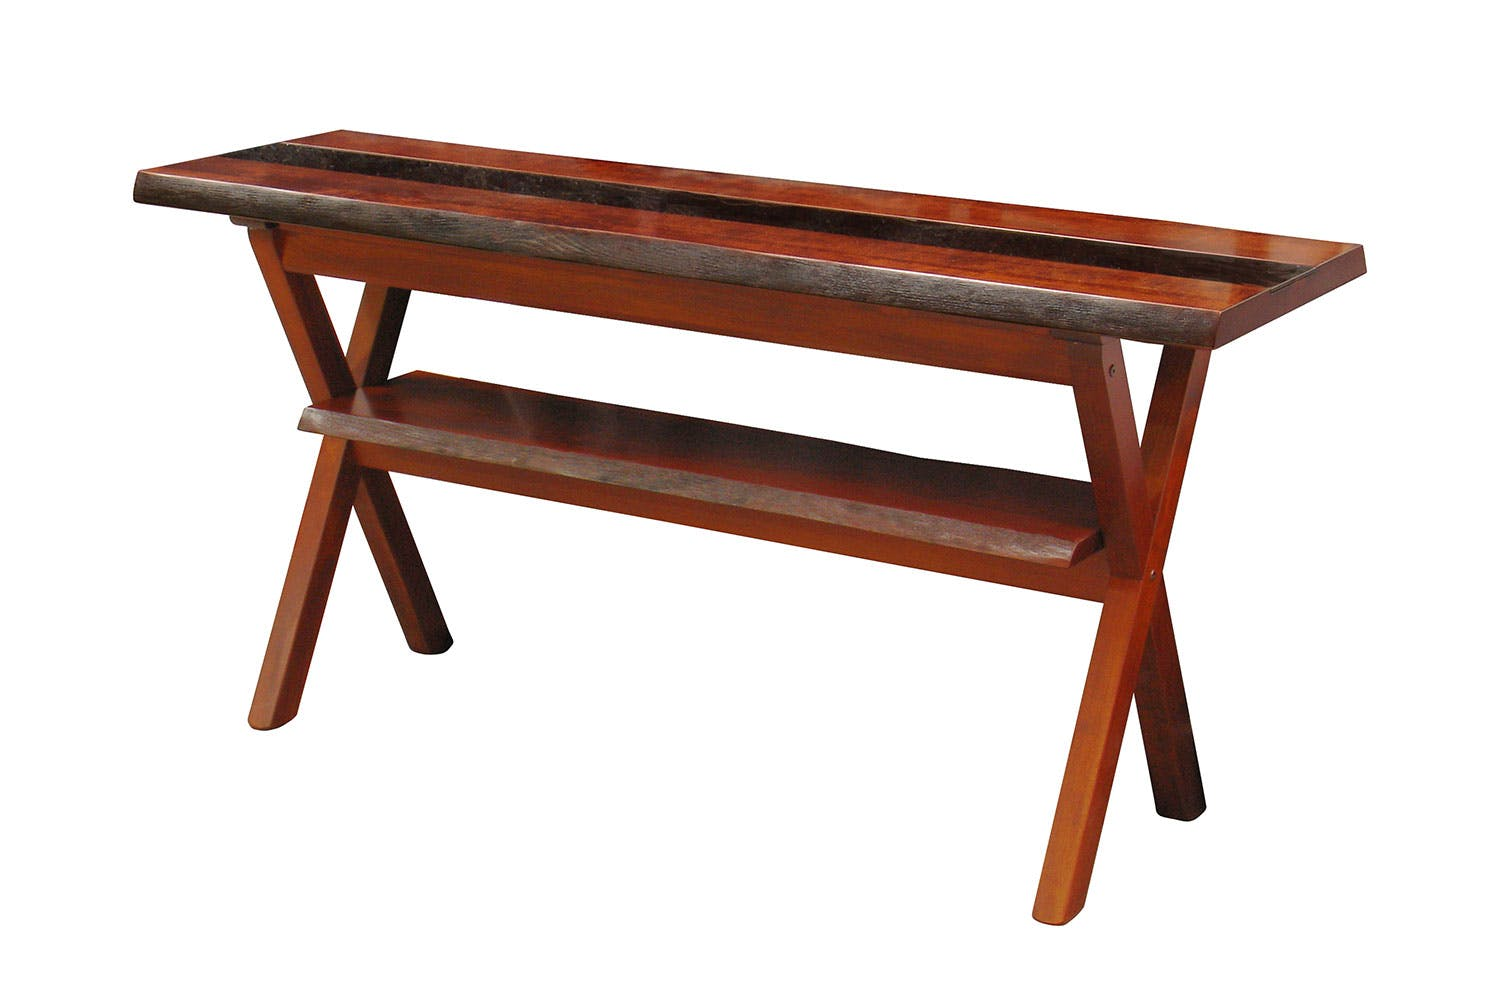 Foyer Table Nz : Middlemarch hall table by otago furniture harvey norman